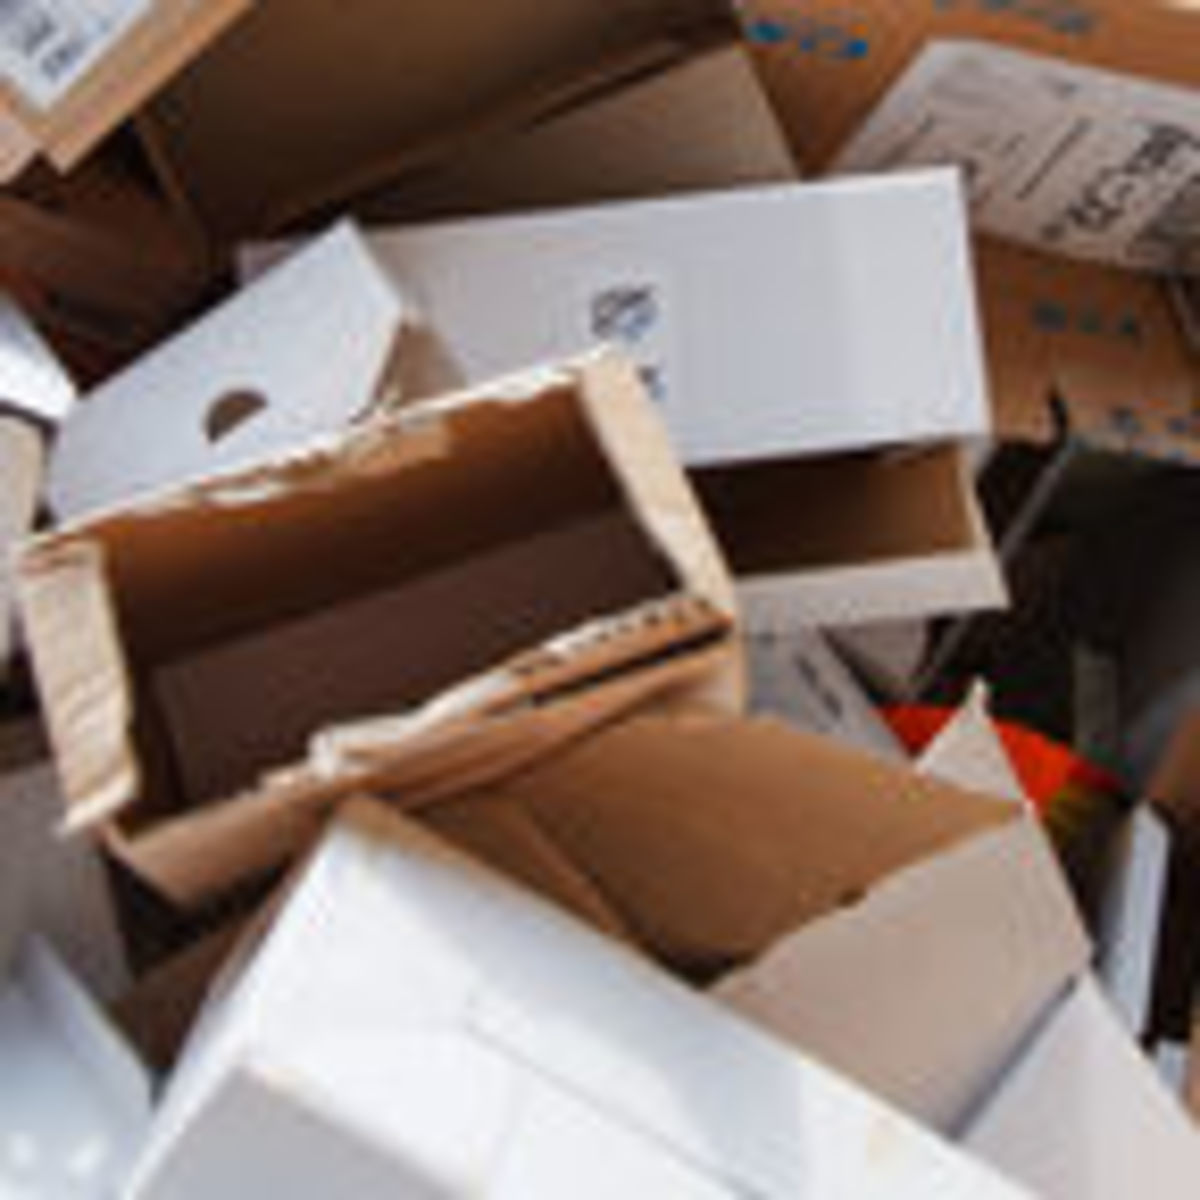 The Amazon Effect: A Packaging Boom—and Waste | Psychology Today